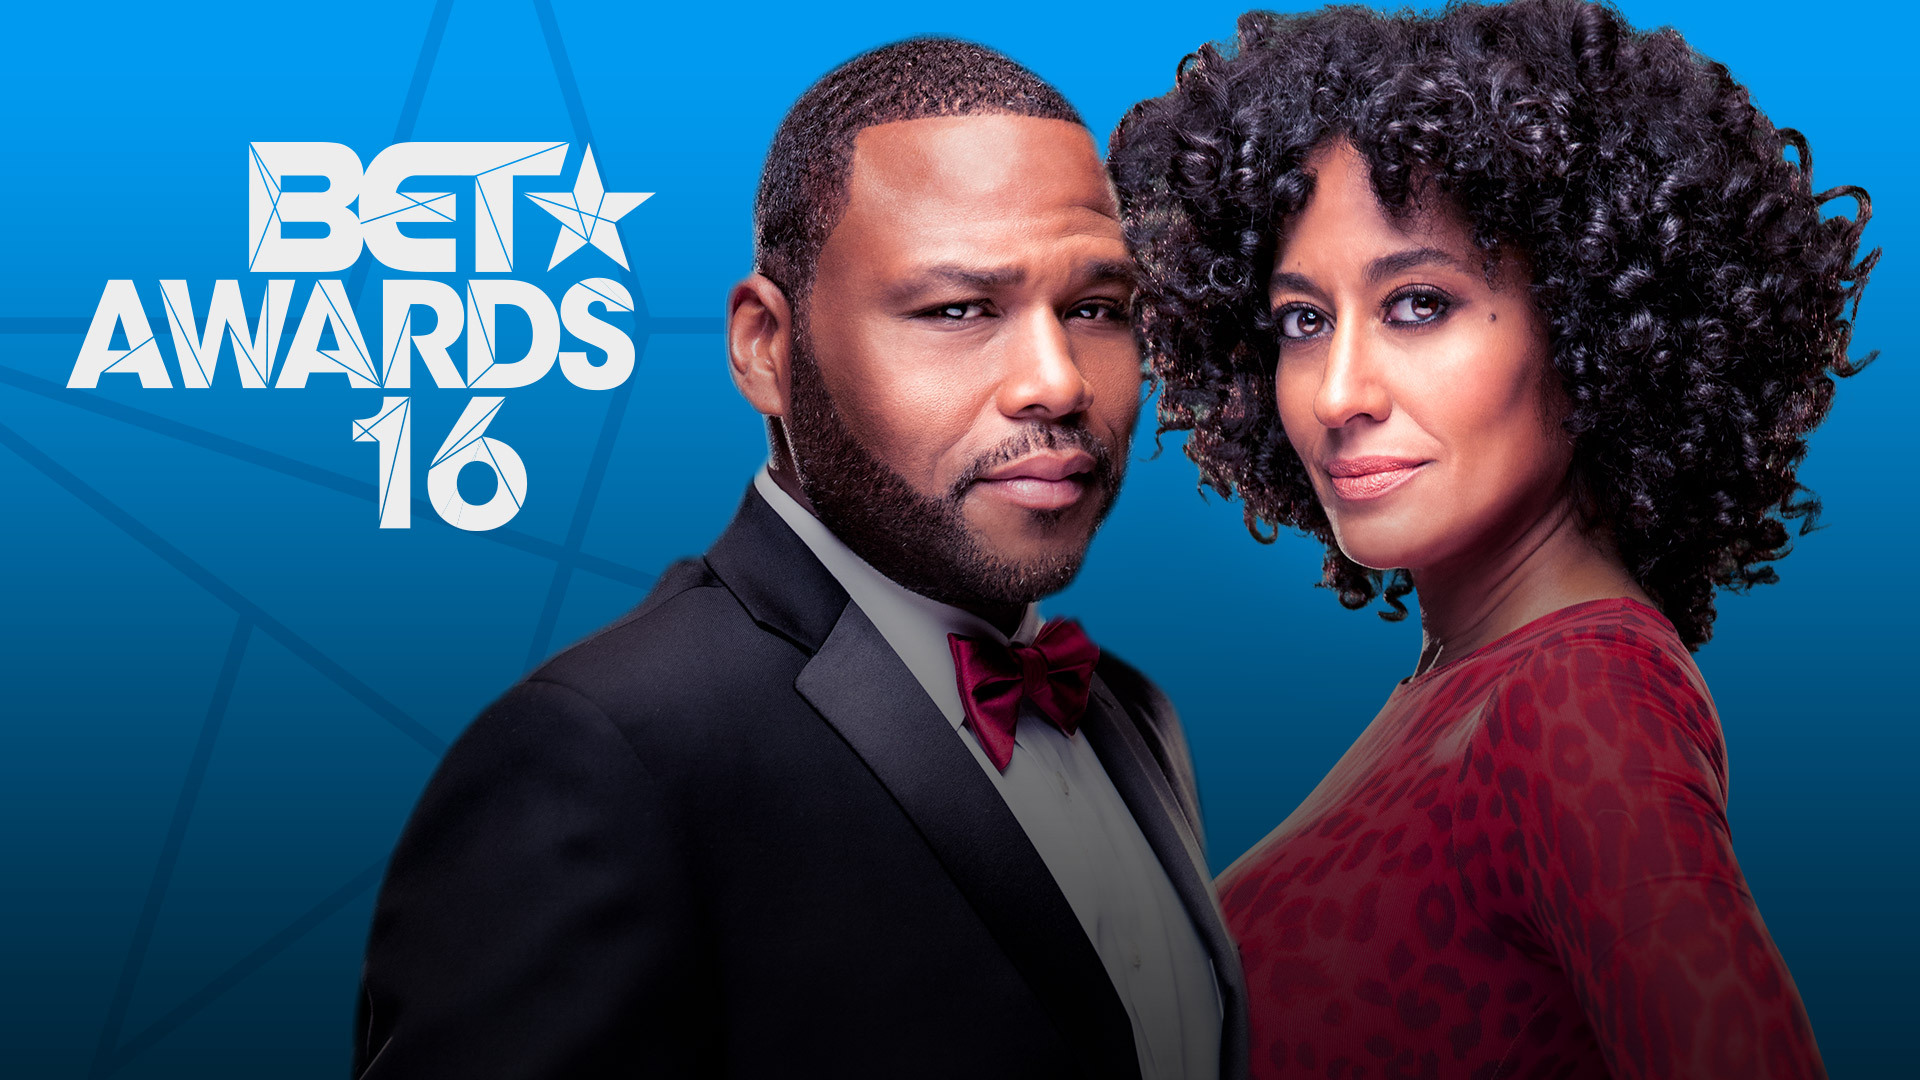 TONIGHT 8/7c - CATCH THE BET AWARDS